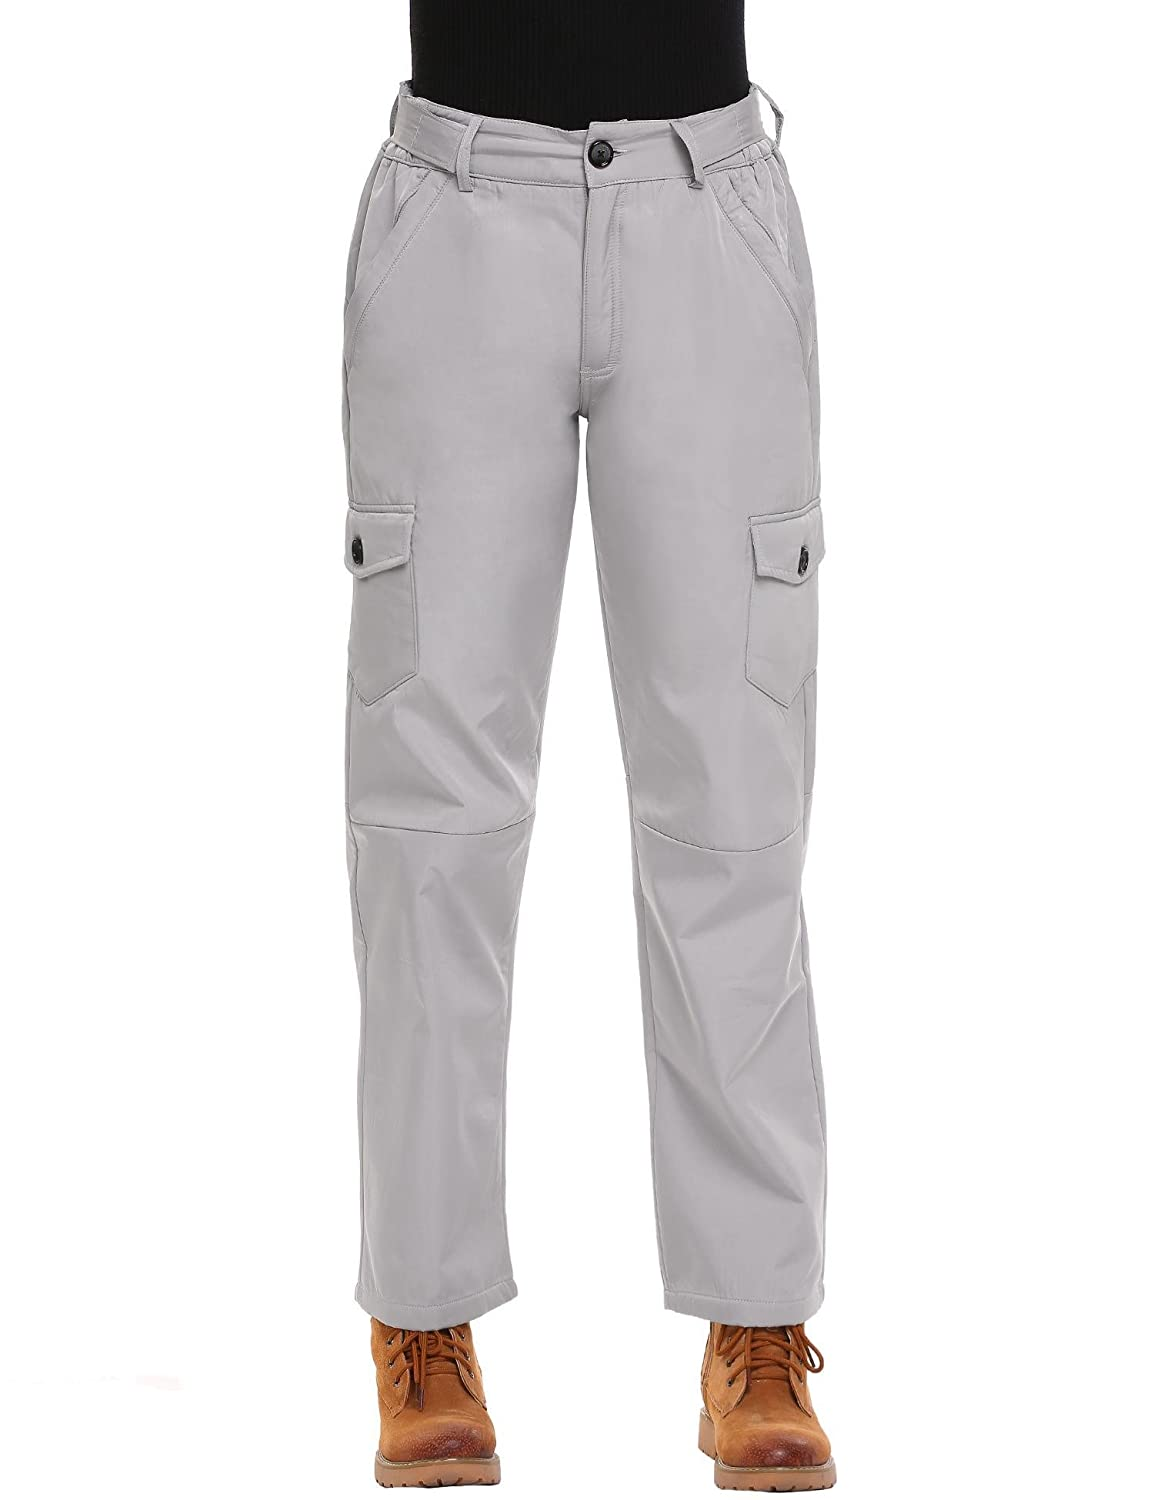 wholesale online convenience goods clear-cut texture Nessere Womens Loose Snow Pants Casual Waterproof Sweatpants ...